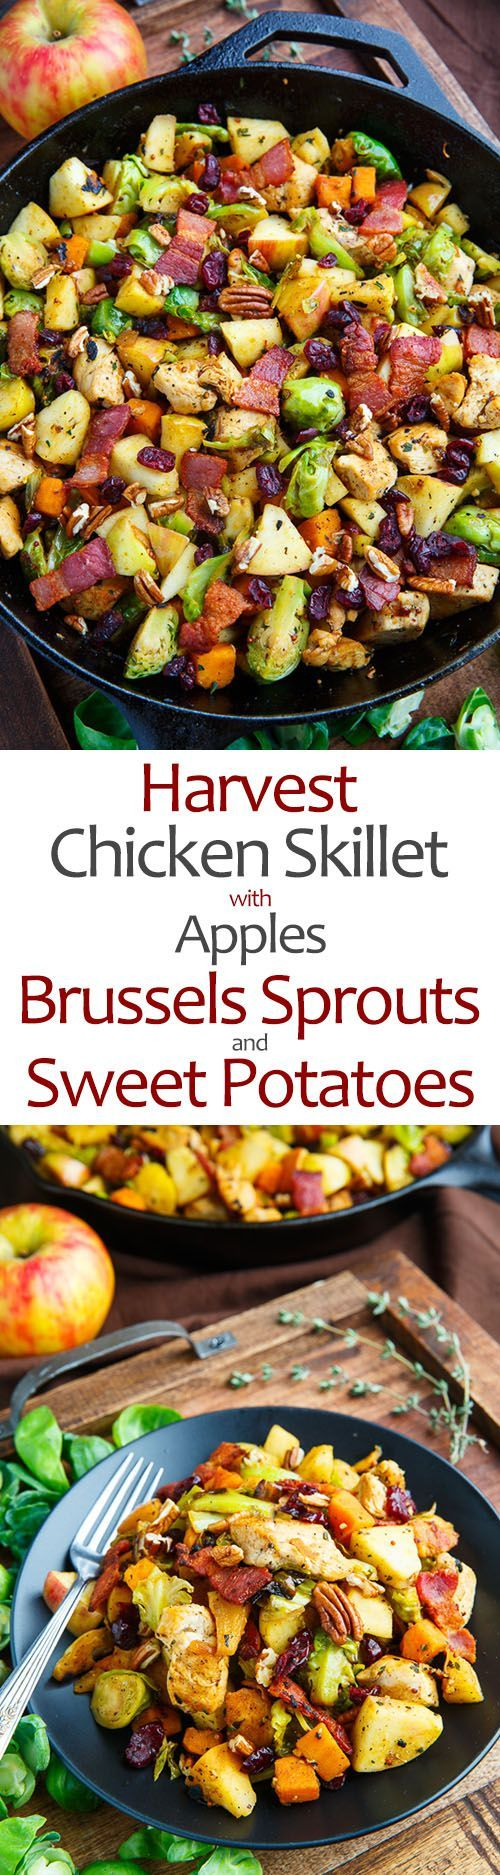 17 best images about electric skillet recipes on pinterest for Chicken and brussel sprouts skillet